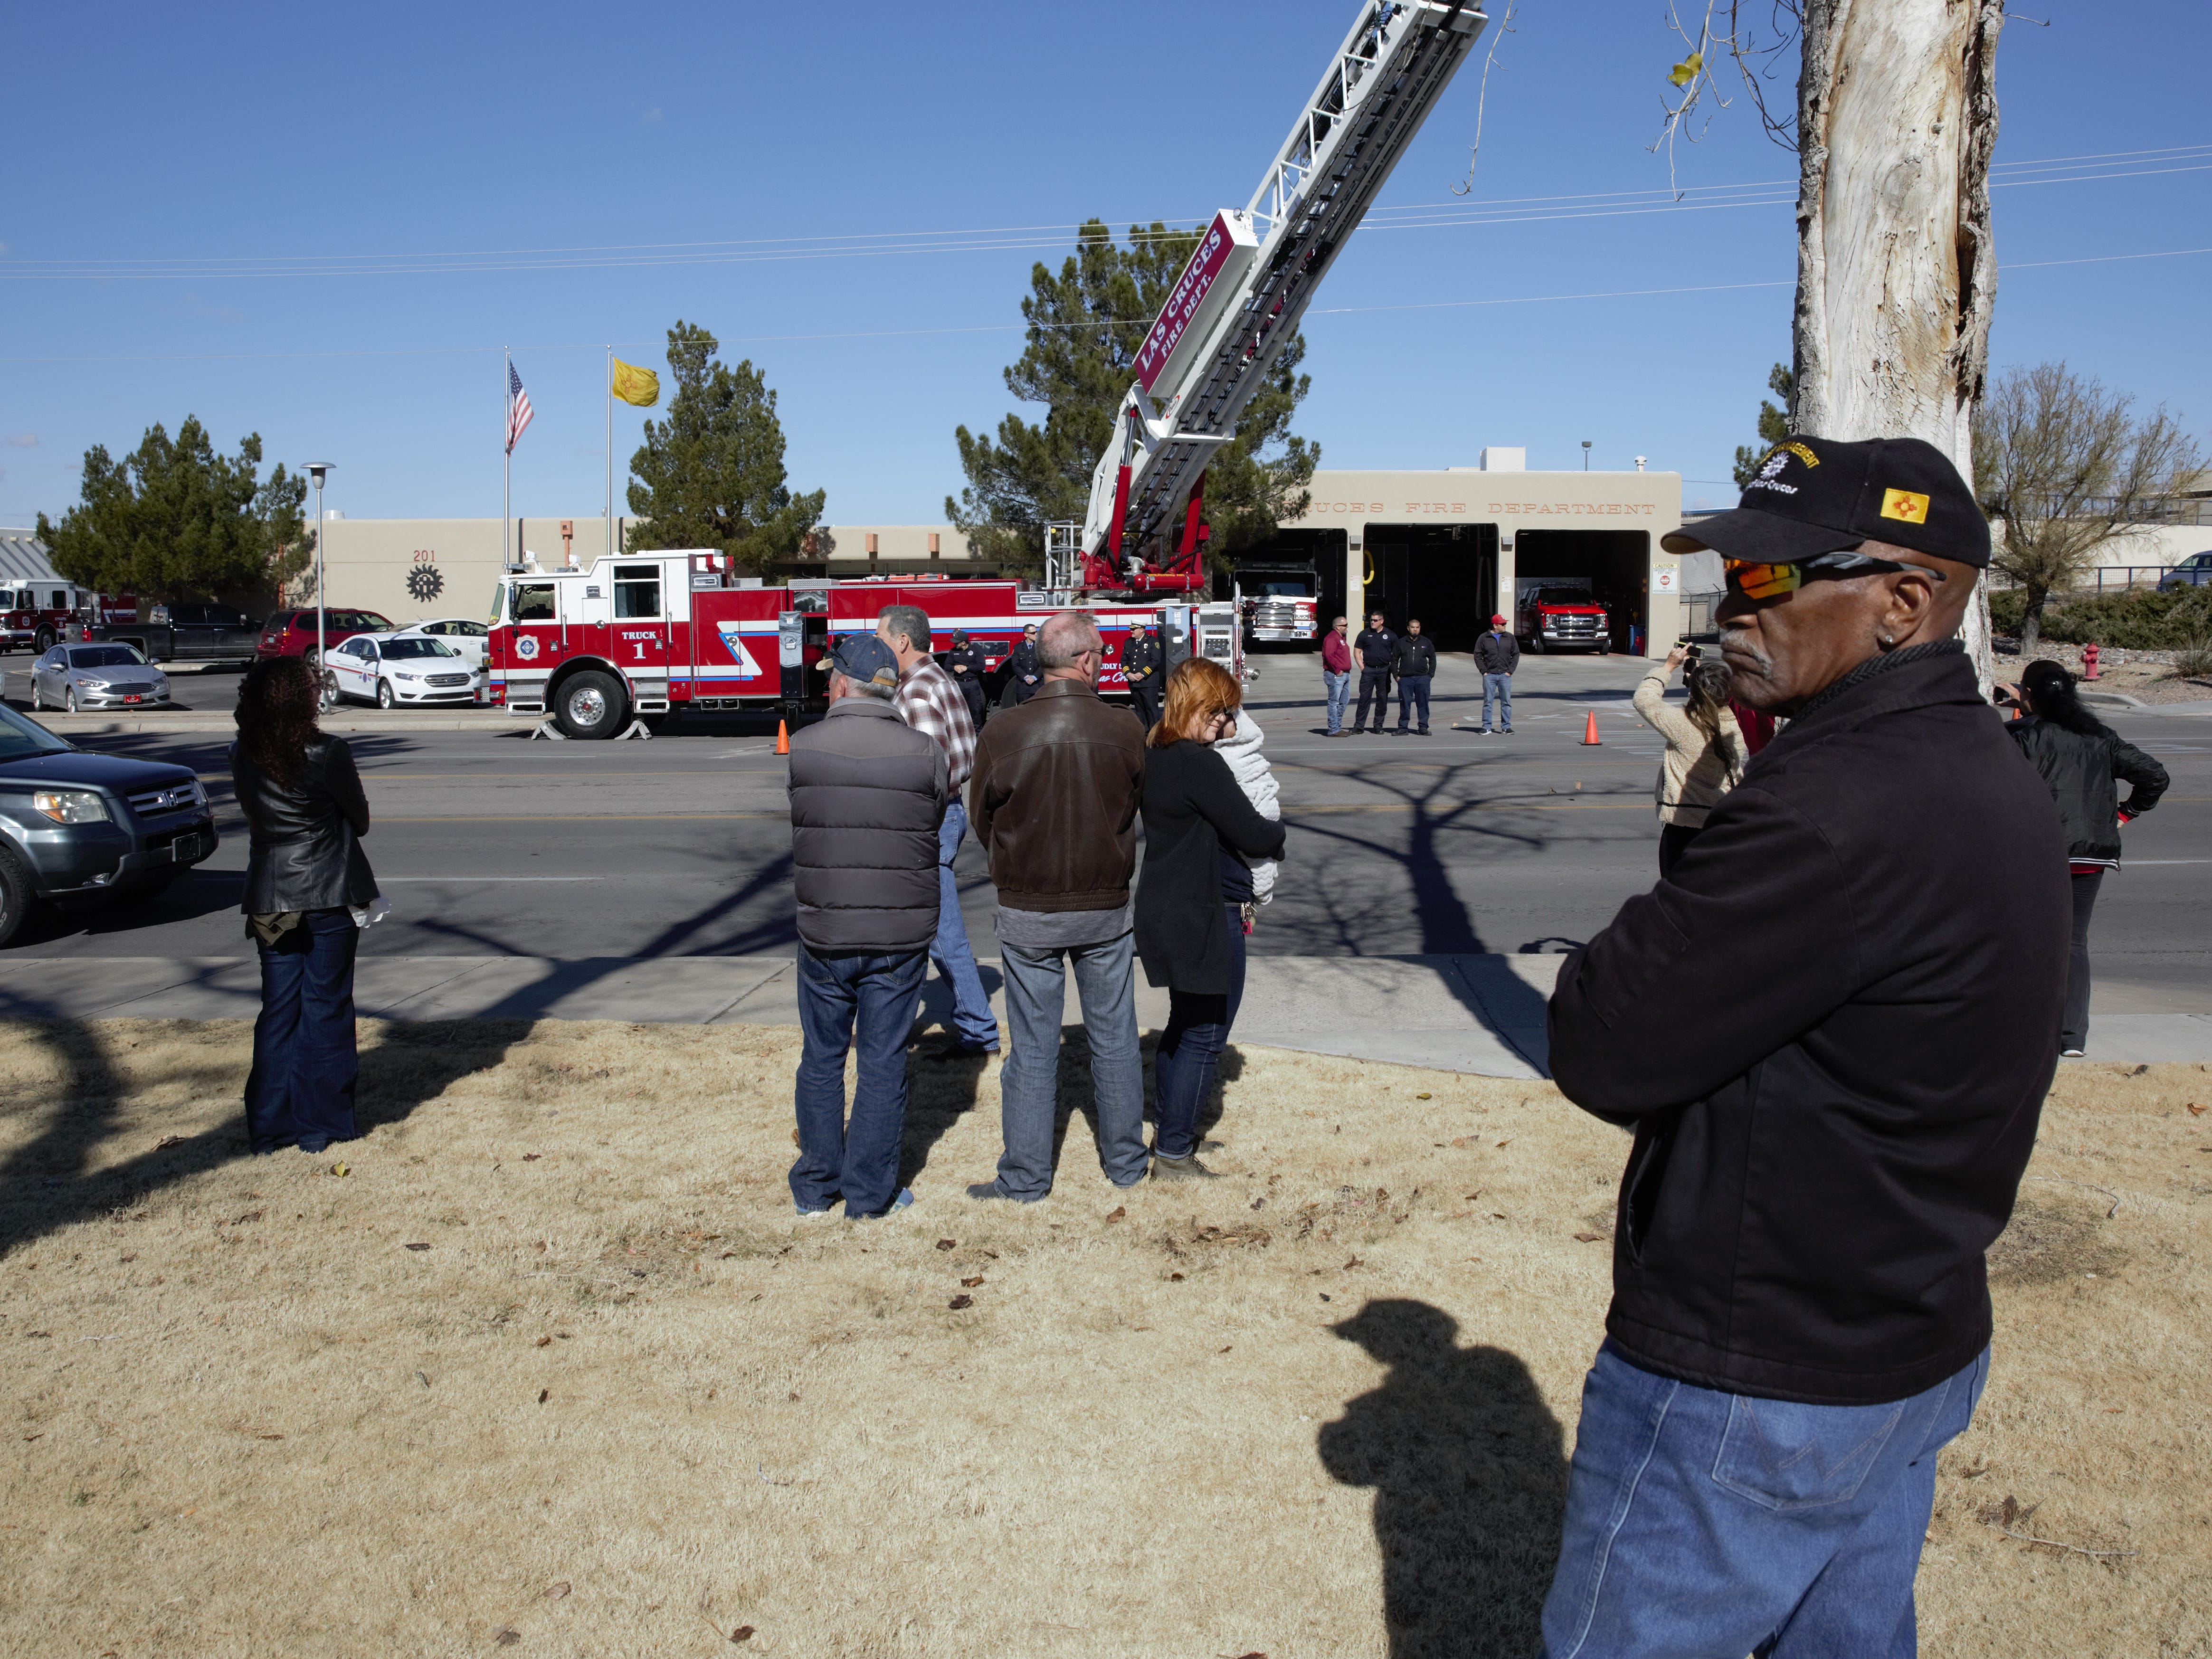 """James Hill, a fleet service writer for the city and a former LCPD officer, awaits the arrival of a funeral procession on Picacho Avenue. Hill says he worked under former Las Cruces Police Chief Jaime Montoya for about six years and was """"very happy"""" when Montoya was named chief. Hill says he was shocked to hear of Montoya's recent death, which came not long after his retirement."""